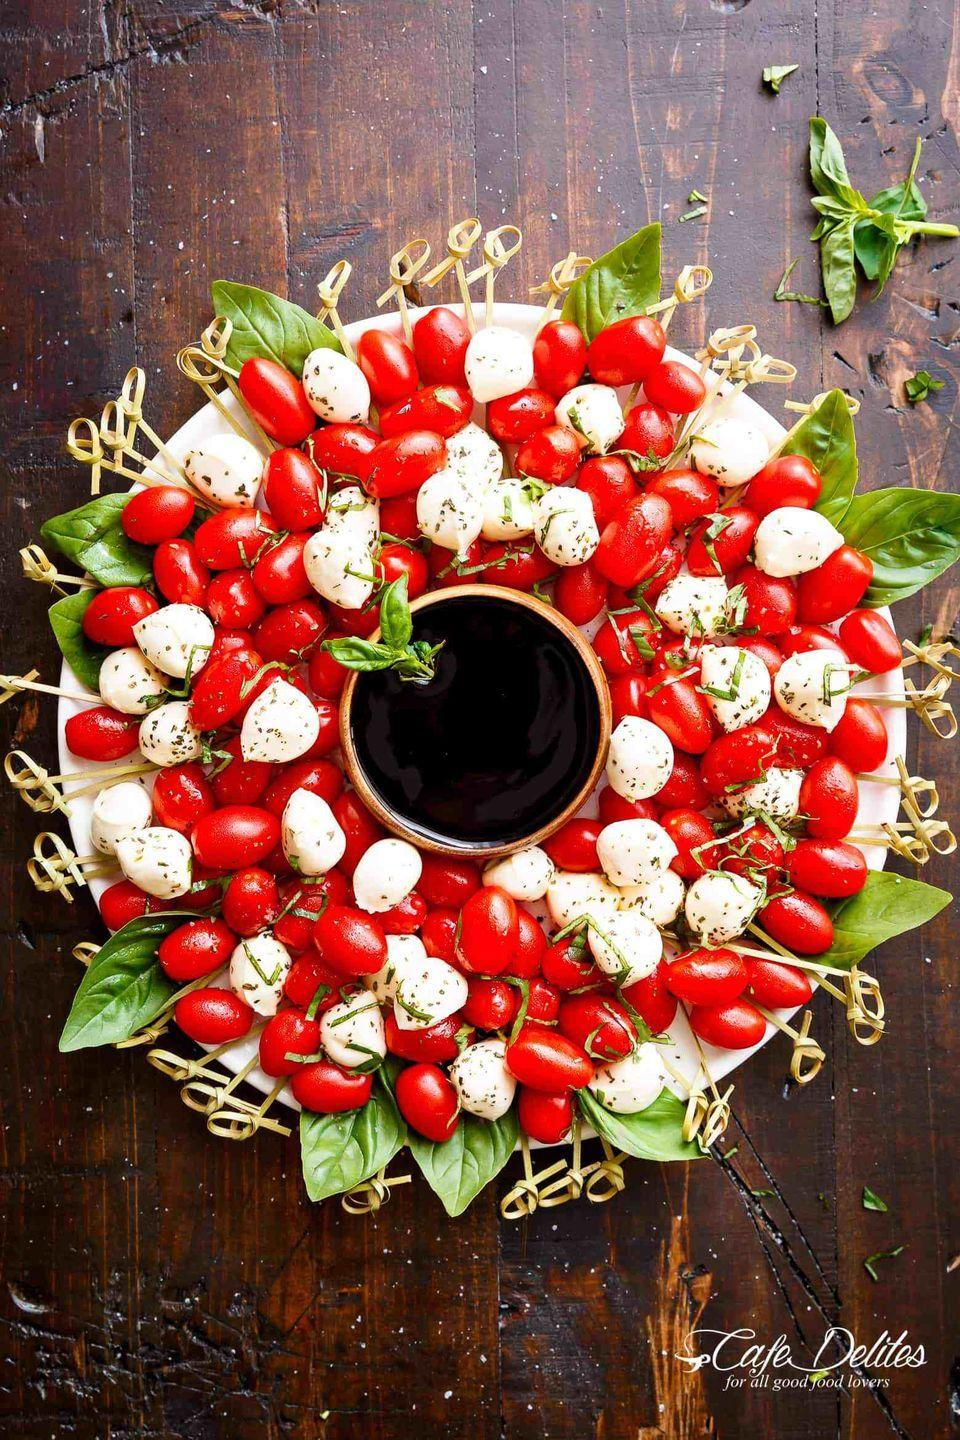 """<p>Mimic your own <a href=""""https://www.countryliving.com/diy-crafts/how-to/g1056/diy-wreath-ideas/"""" rel=""""nofollow noopener"""" target=""""_blank"""" data-ylk=""""slk:Christmas wreath"""" class=""""link rapid-noclick-resp"""">Christmas wreath</a> to make this stunning caprese plate.</p><p><strong>Get the recipe at <a href=""""https://cafedelites.com/caprese-christmas-wreath/"""" rel=""""nofollow noopener"""" target=""""_blank"""" data-ylk=""""slk:Cafe Delites"""" class=""""link rapid-noclick-resp"""">Cafe Delites</a>.</strong></p>"""